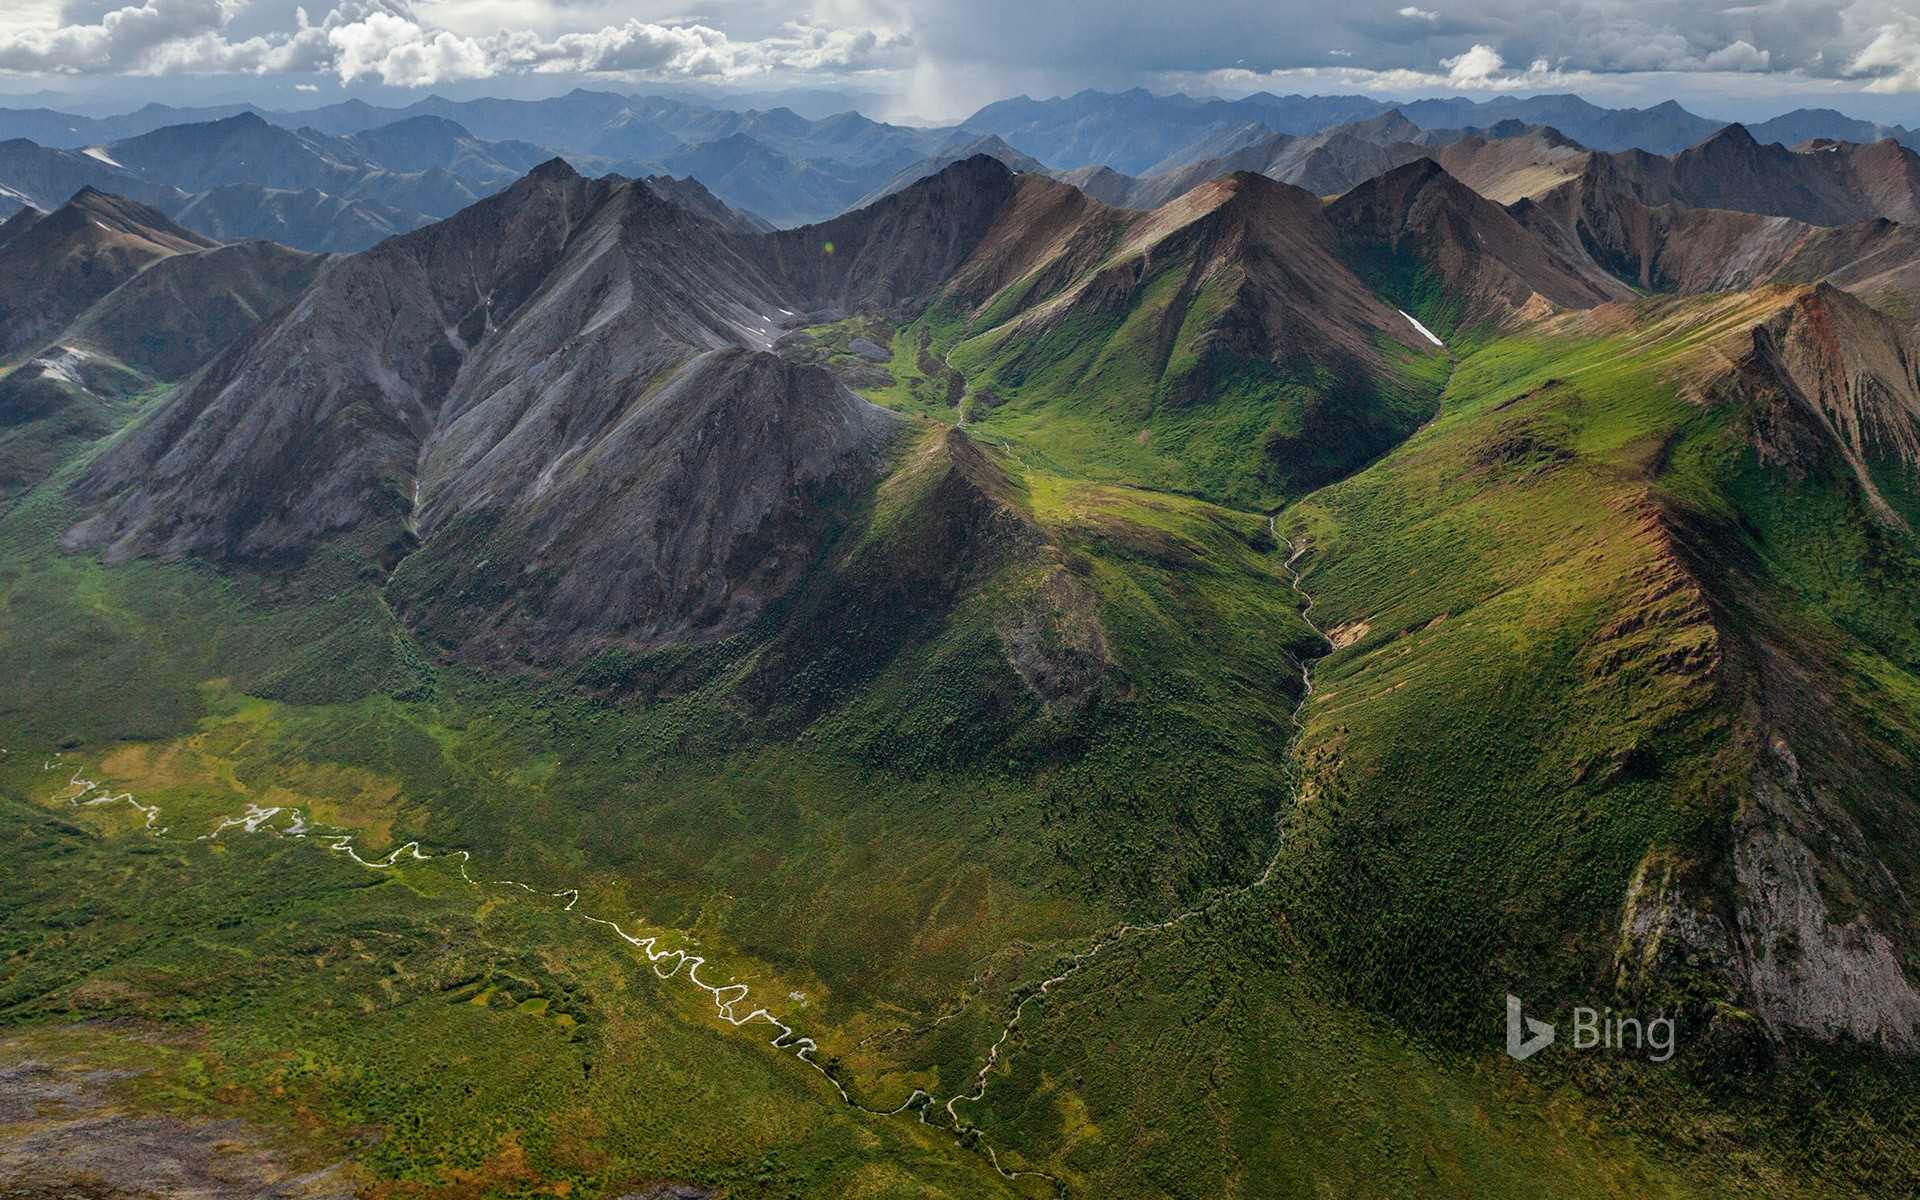 Rugged peaks and braided rivers in the Peel Watershed, Yukon, Canada